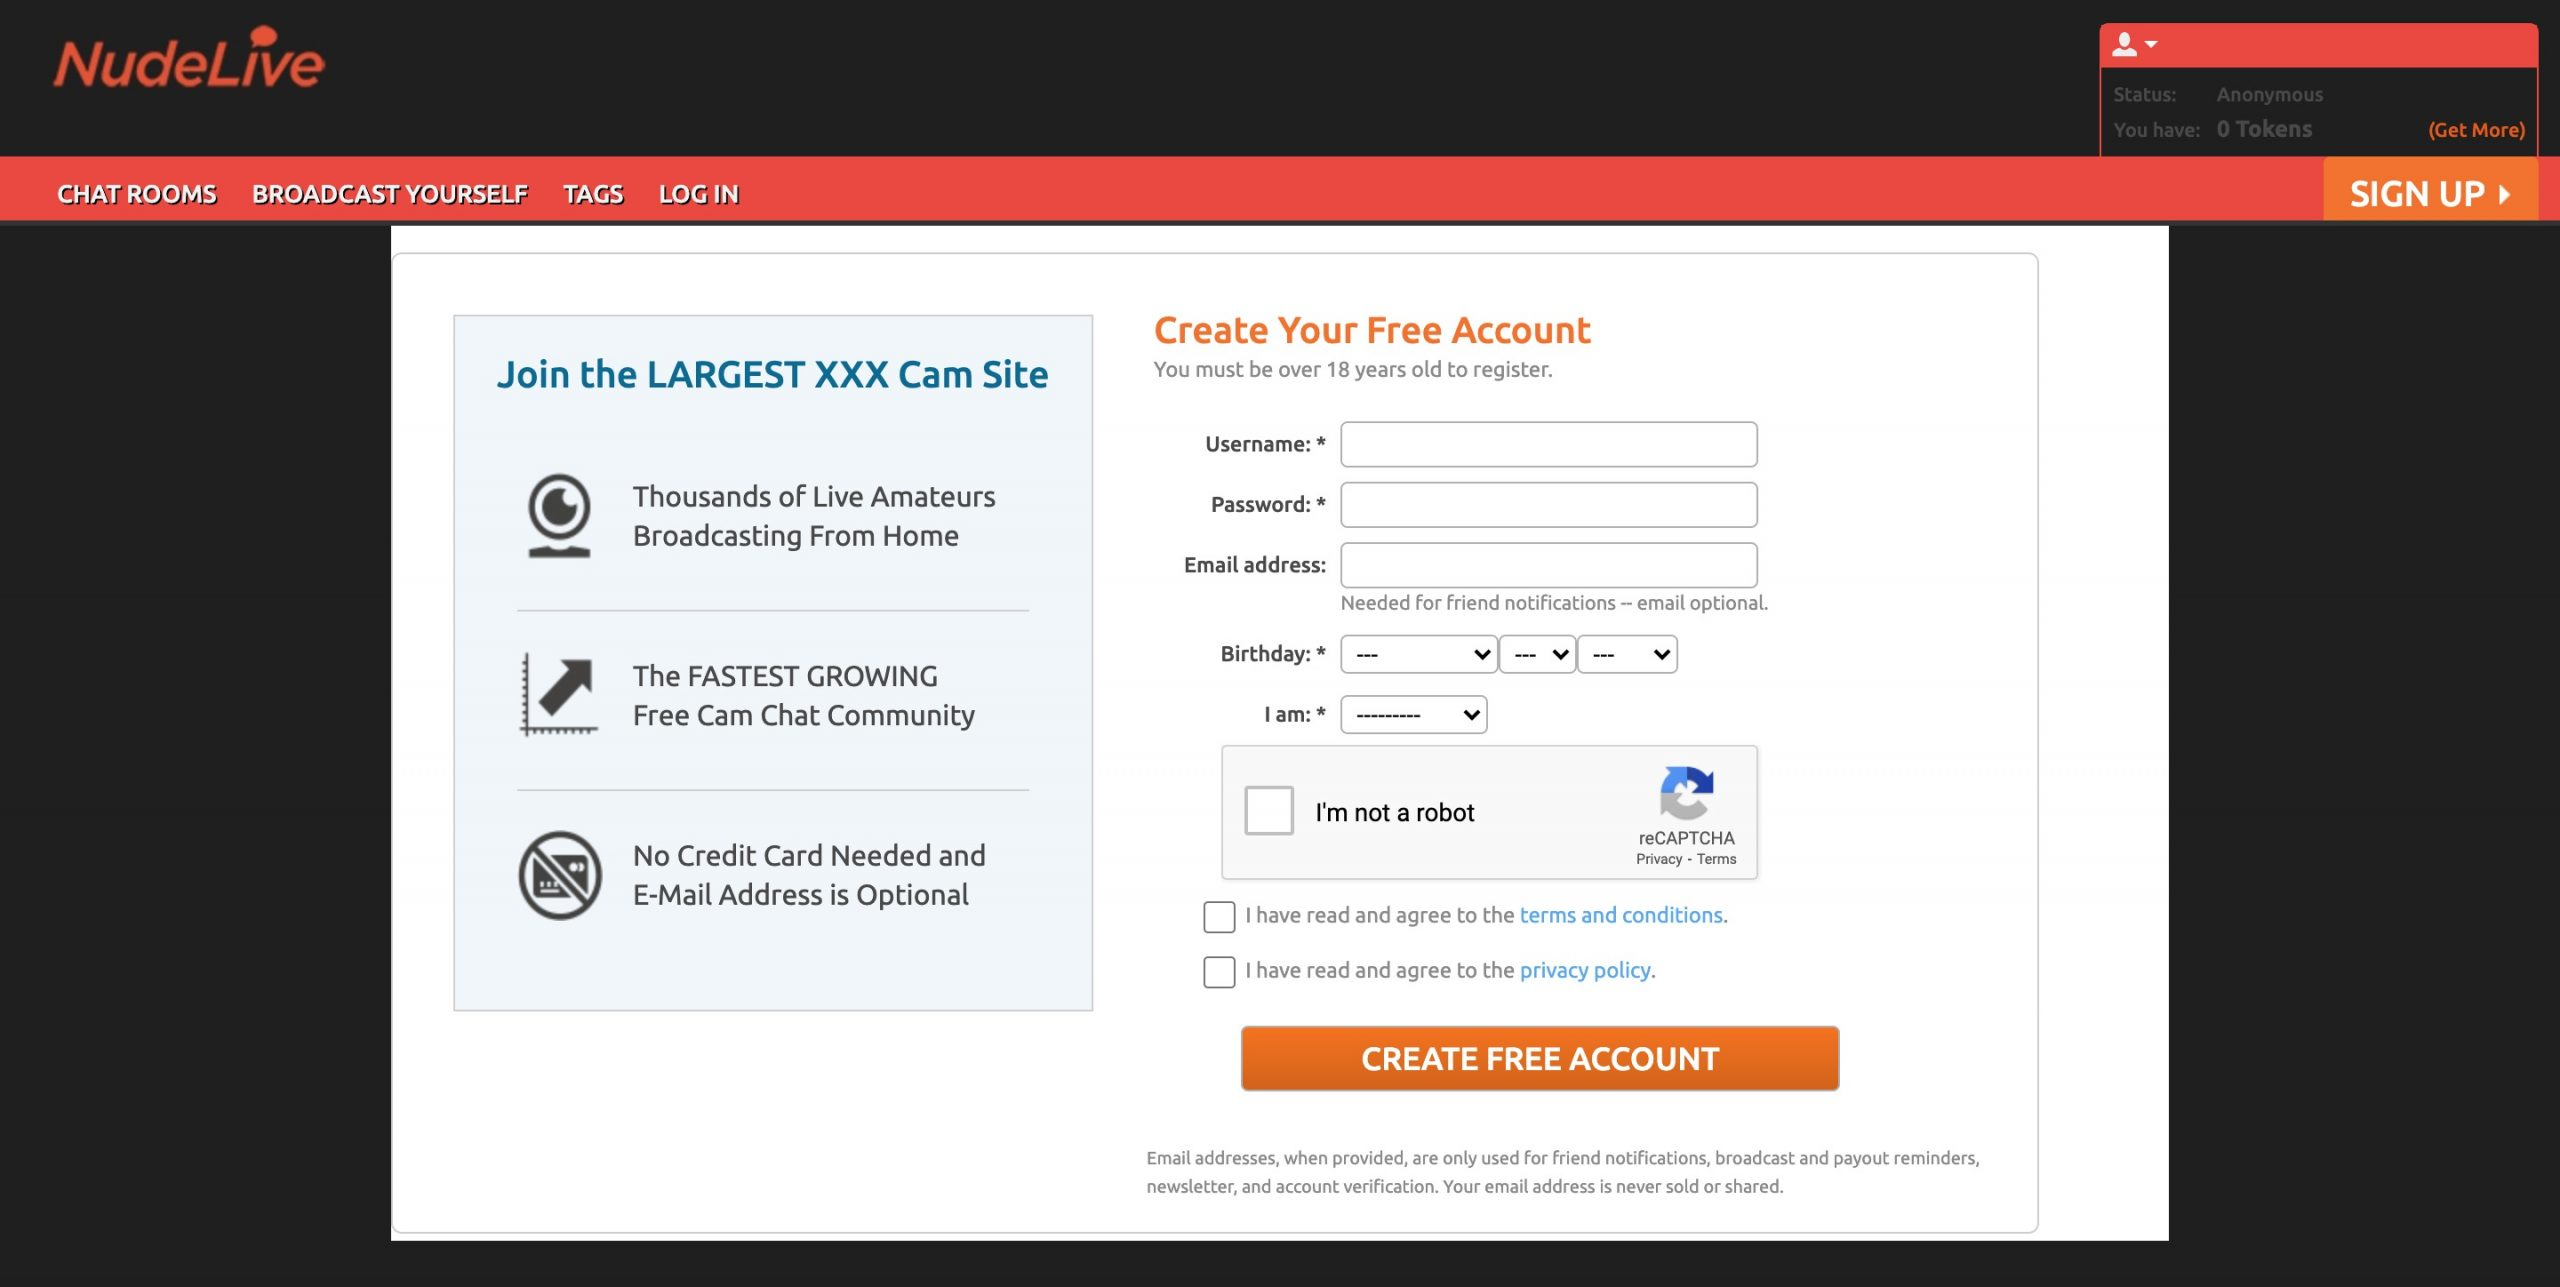 Nudelive create account